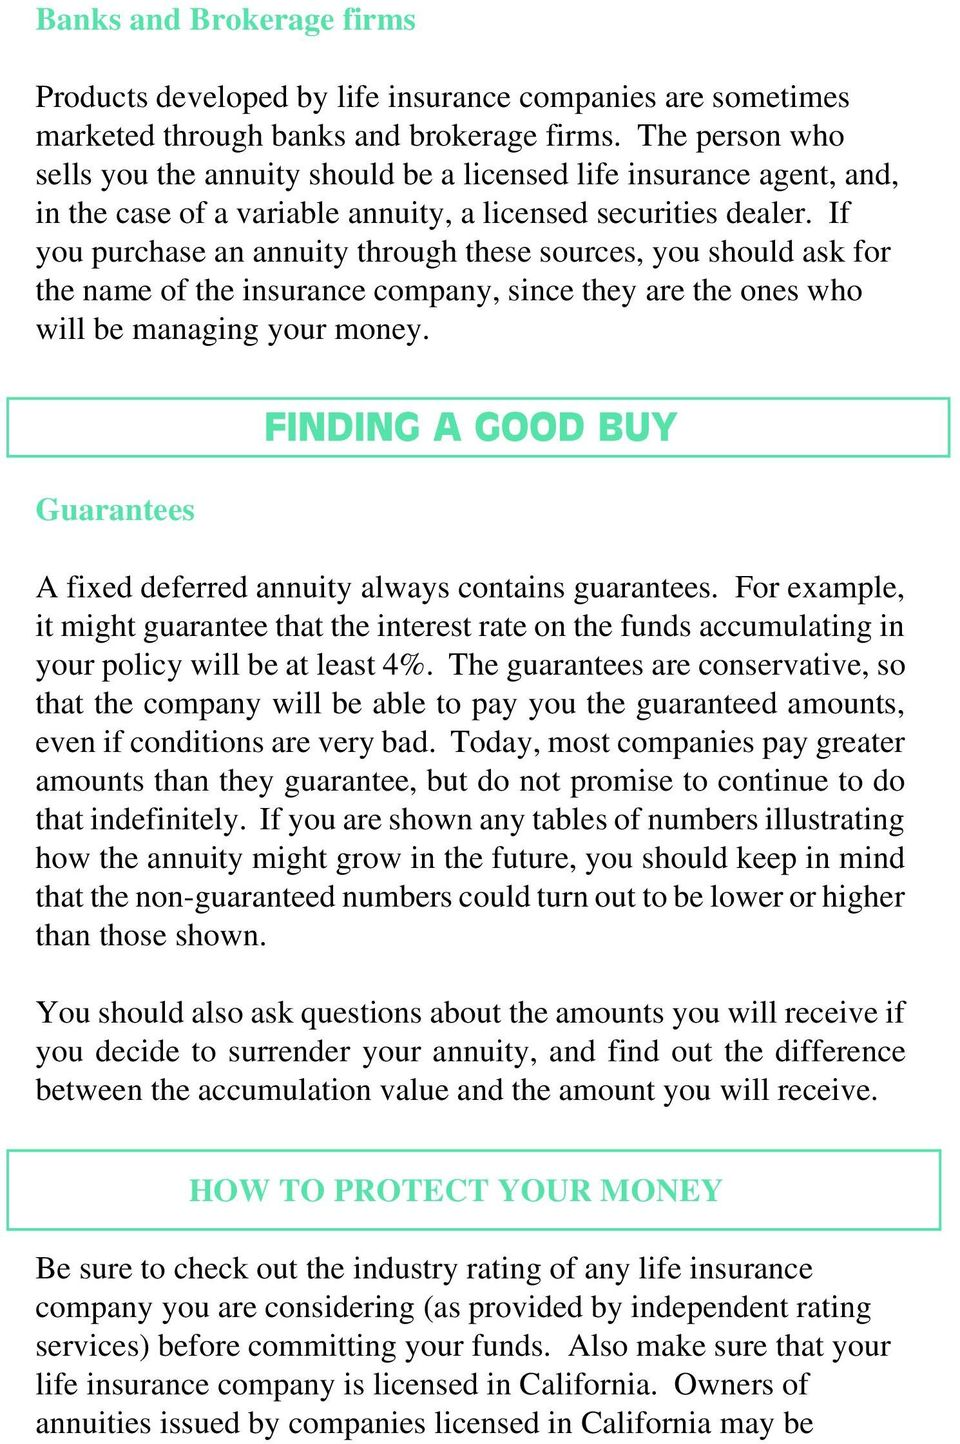 If you purchase an annuity through these sources, you should ask for the name of the insurance company, since they are the ones who will be managing your money.